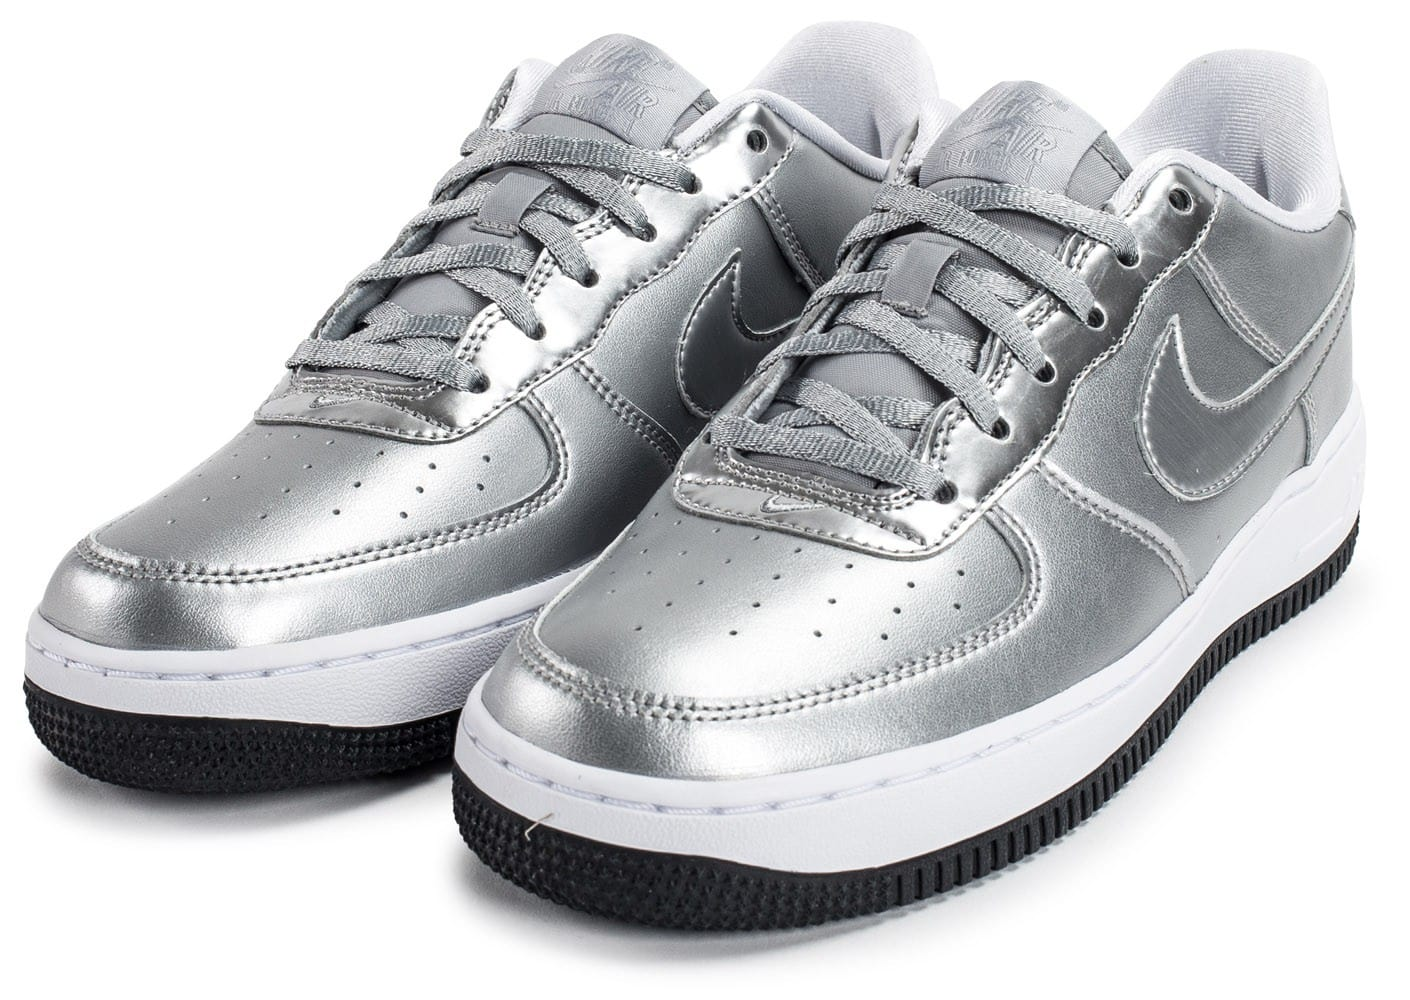 Nike Air Force 1 SE Silver Pack Chaussures Baskets femme